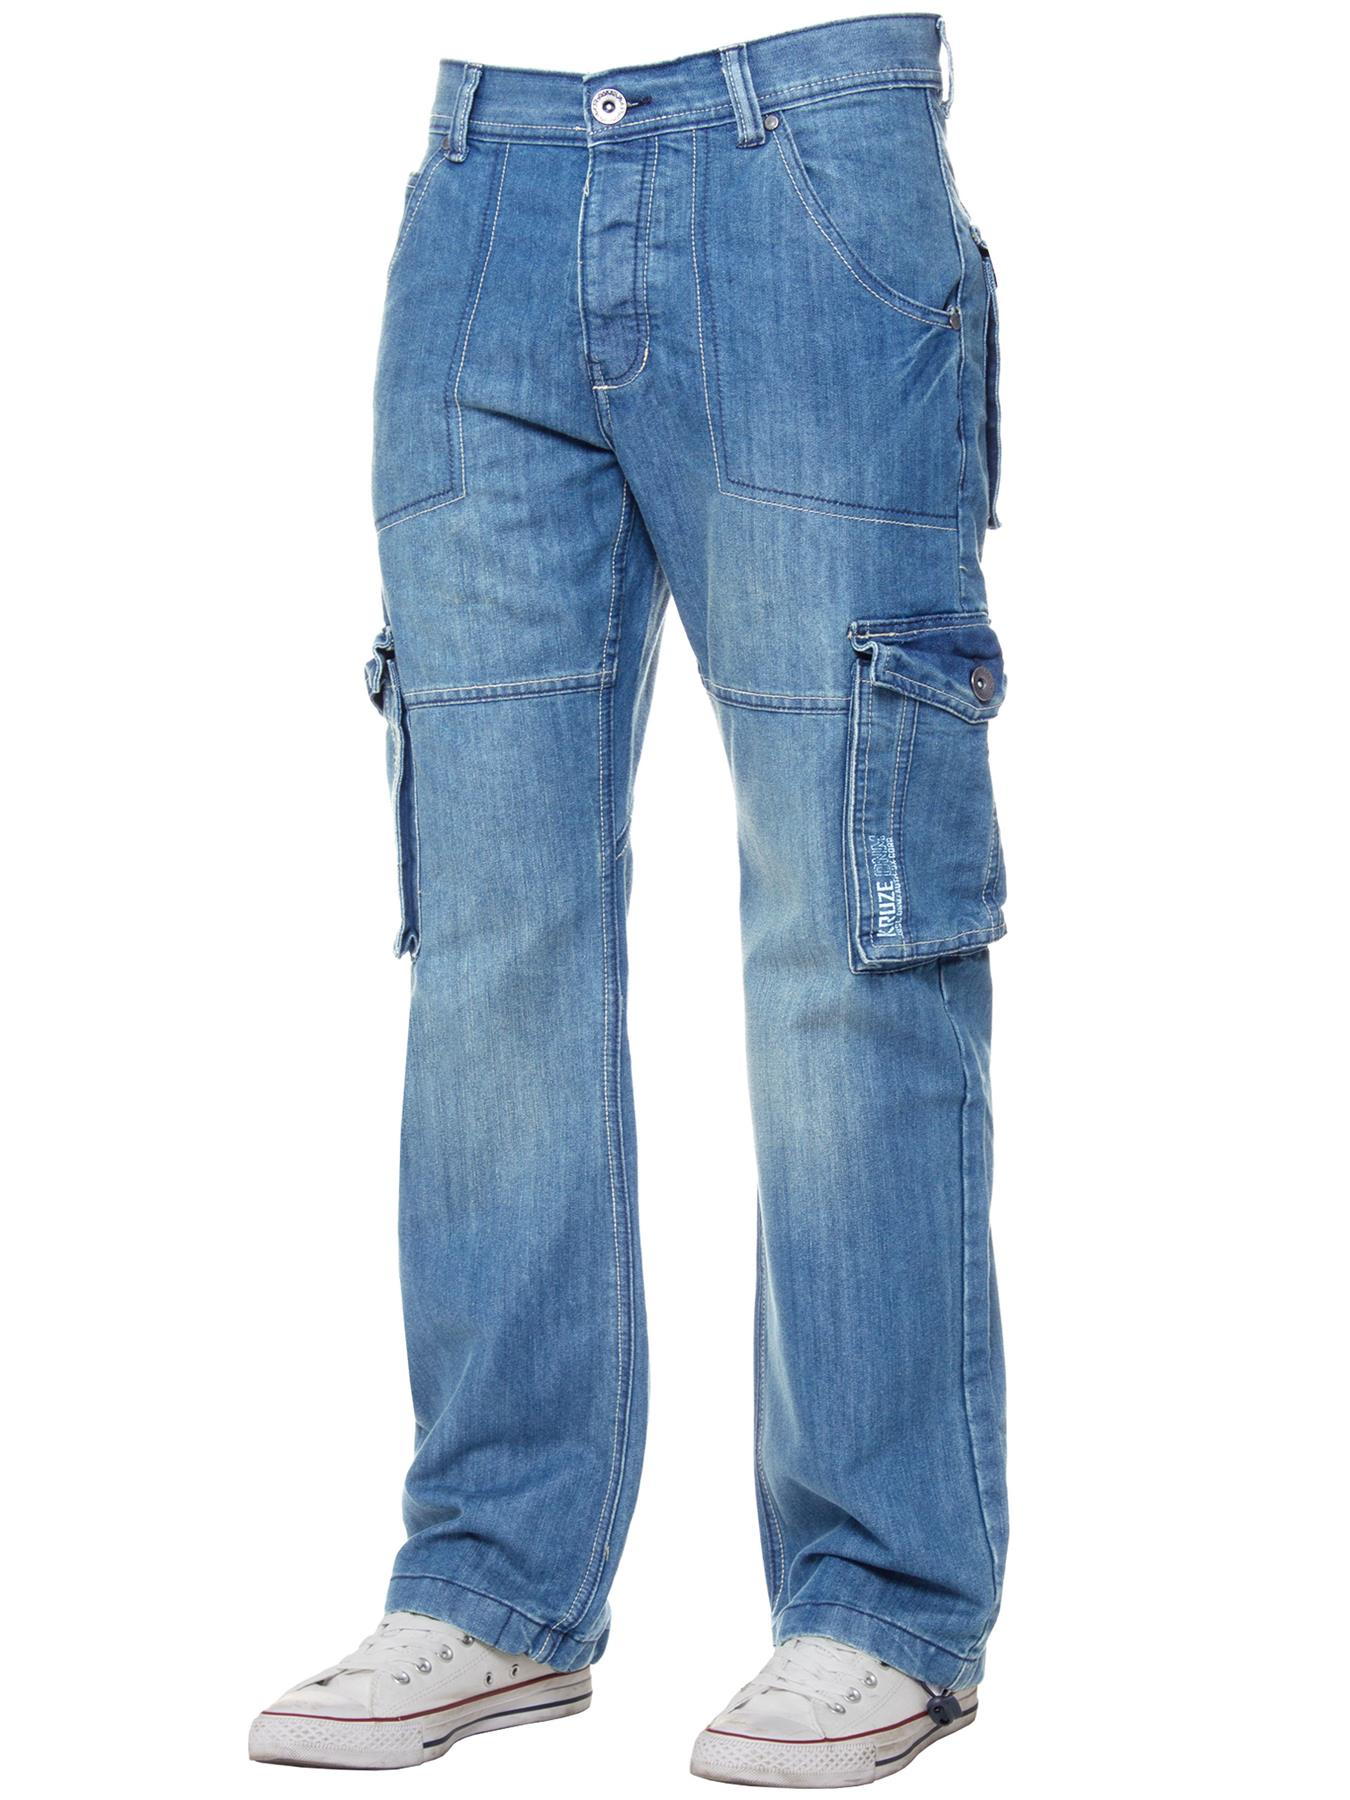 Kruze-Mens-Cargo-Combat-Jeans-Casual-Work-Denim-Pants-Big-Tall-All-Waist-Sizes thumbnail 46